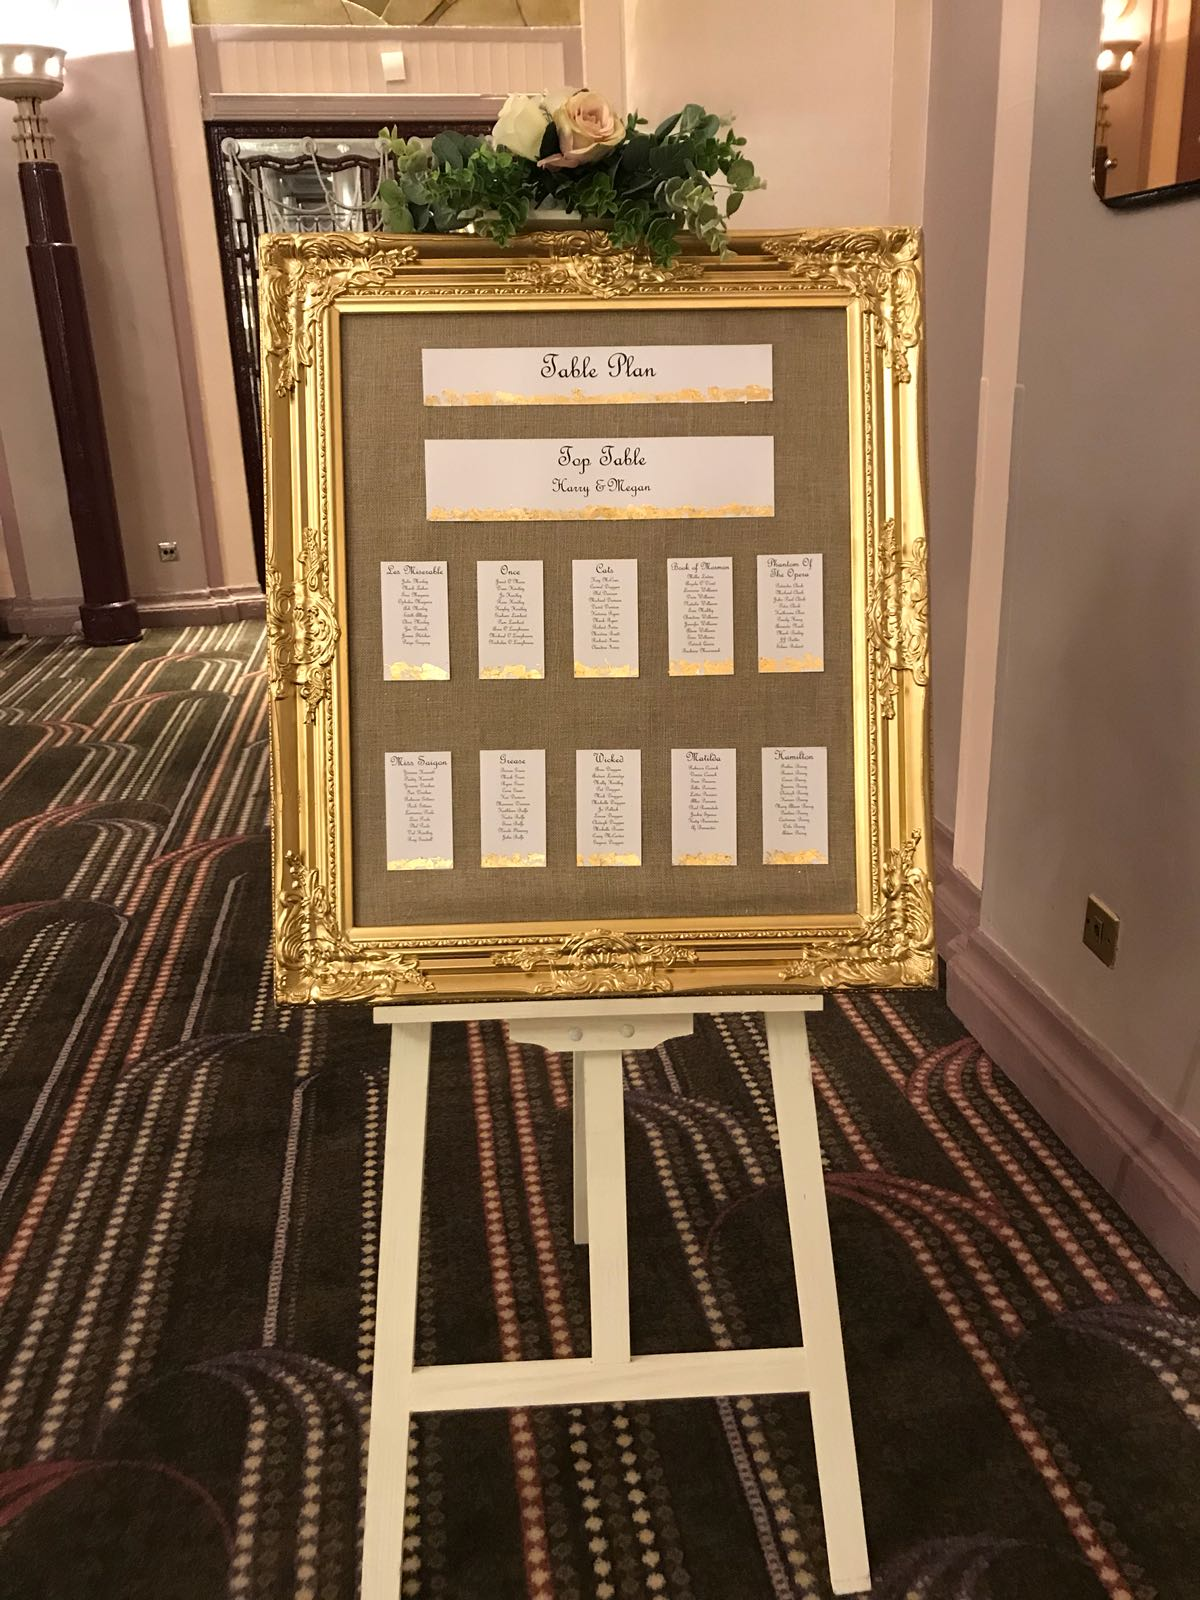 Seating plan with gold leaf edging